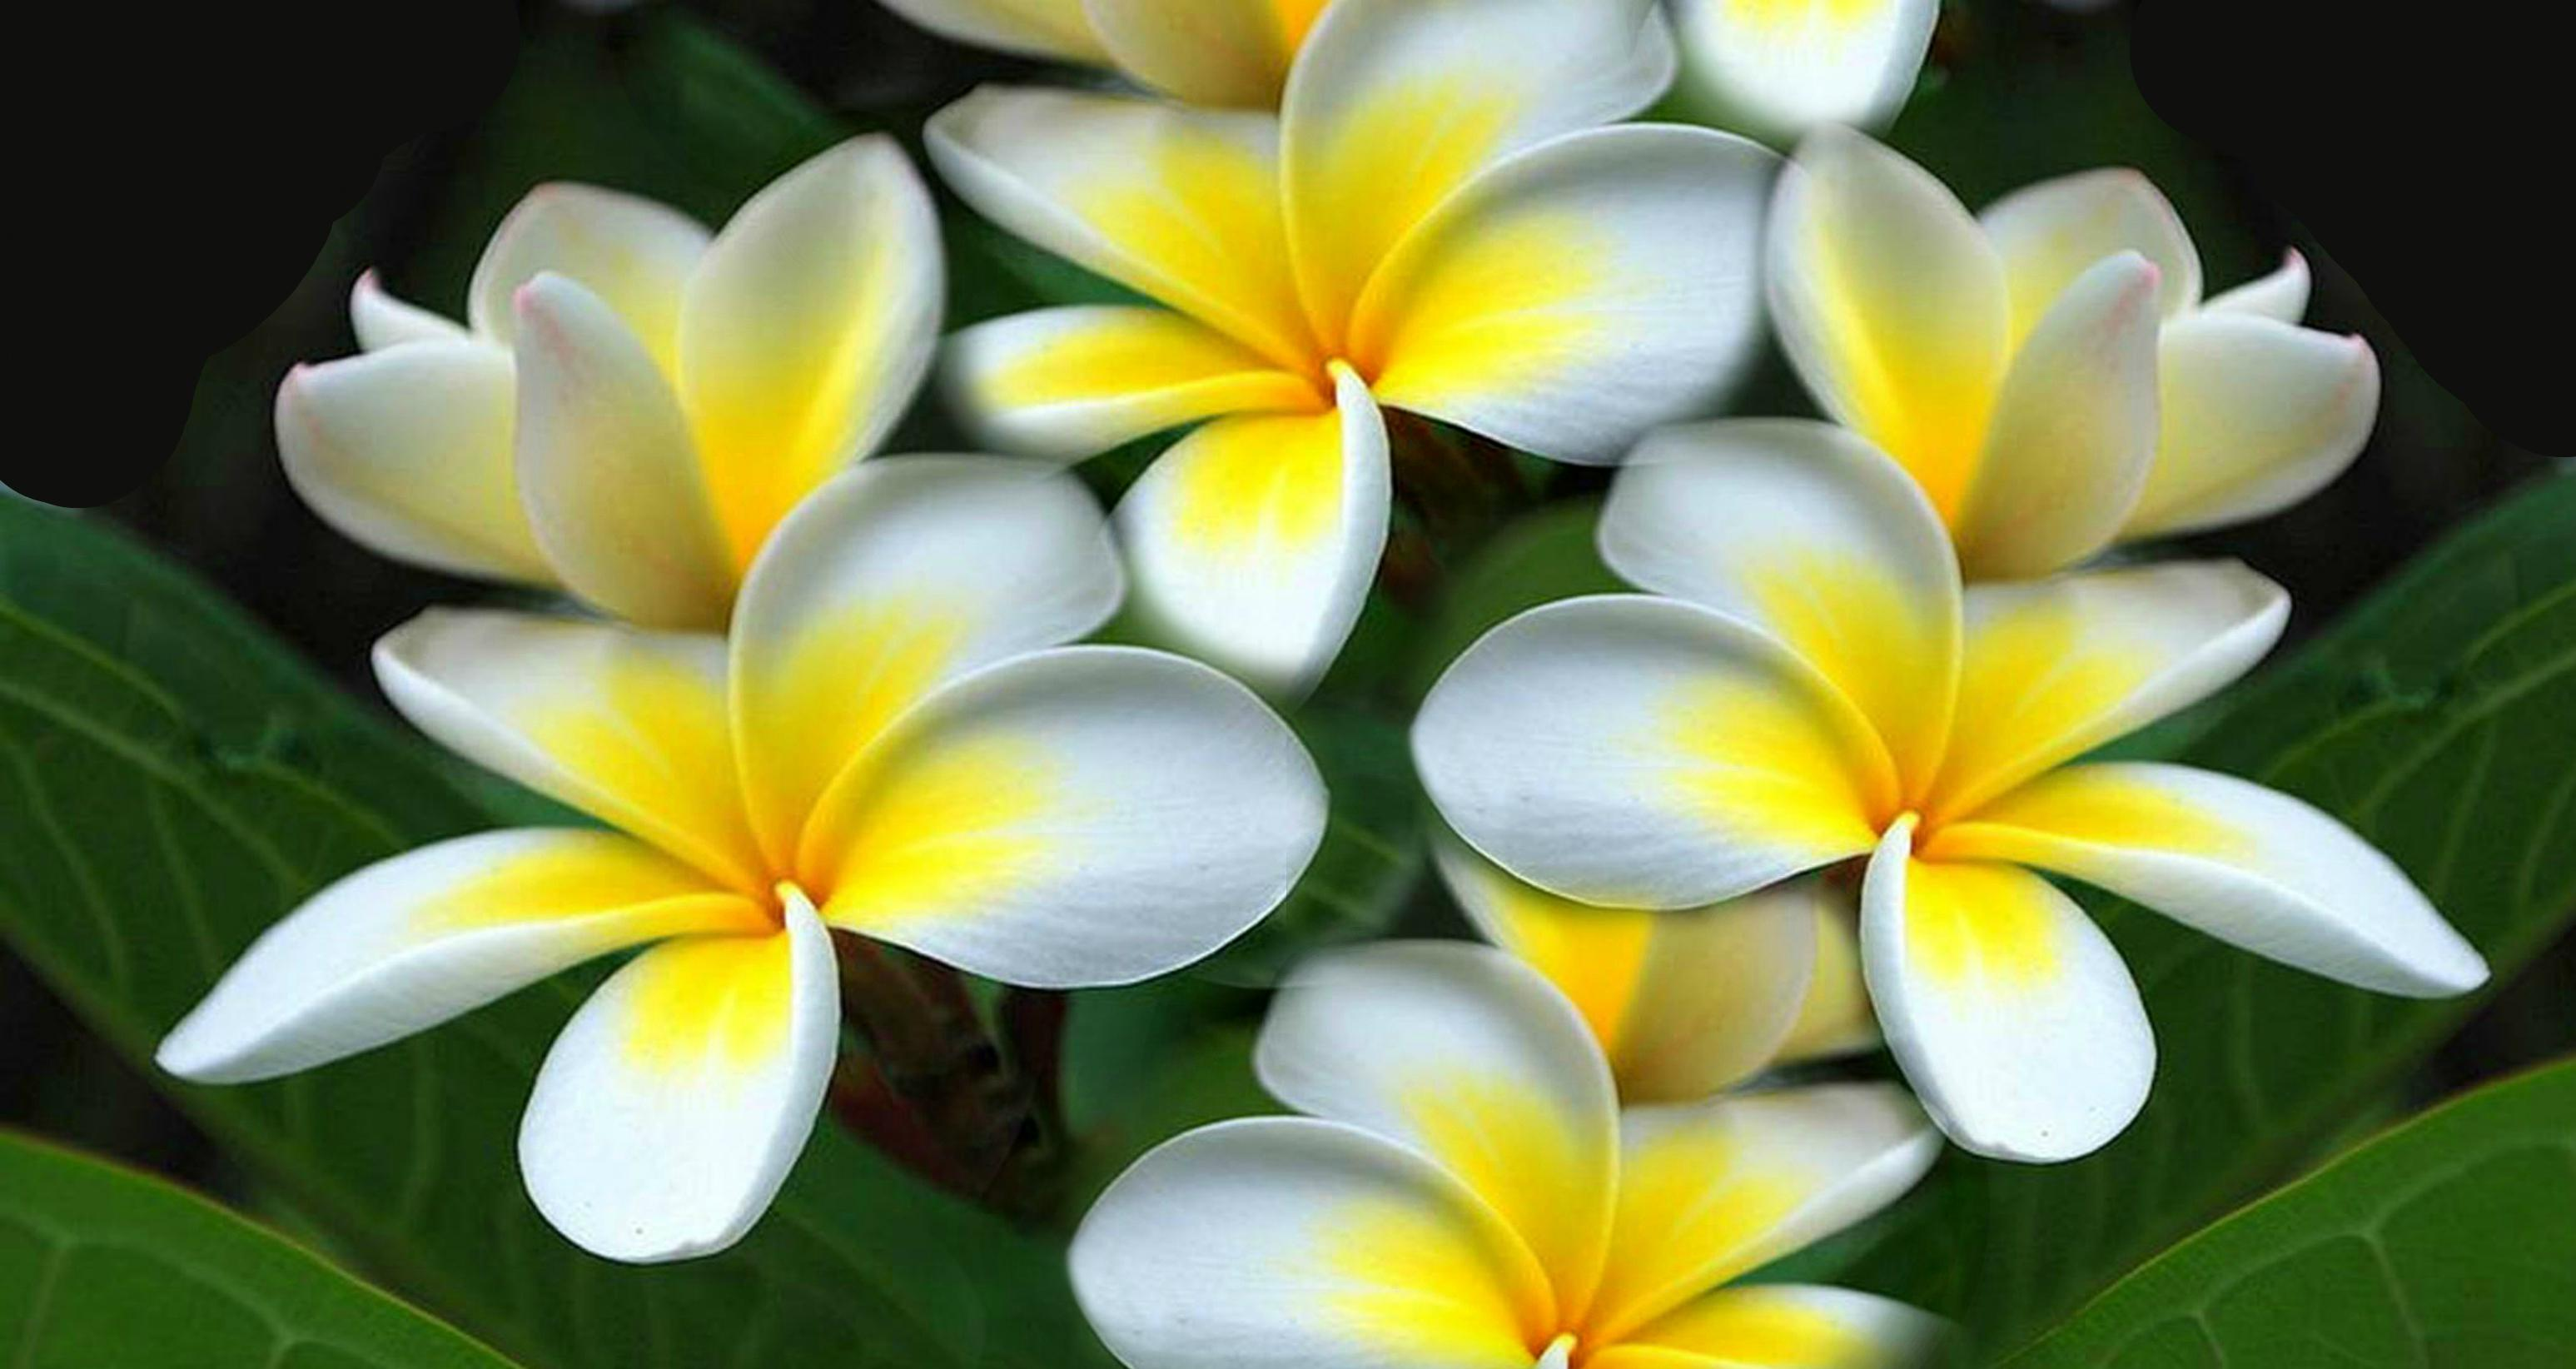 Free 3d Oakland Raiders Live Wallpaper Plumeria Wallpapers Hd Backgrounds